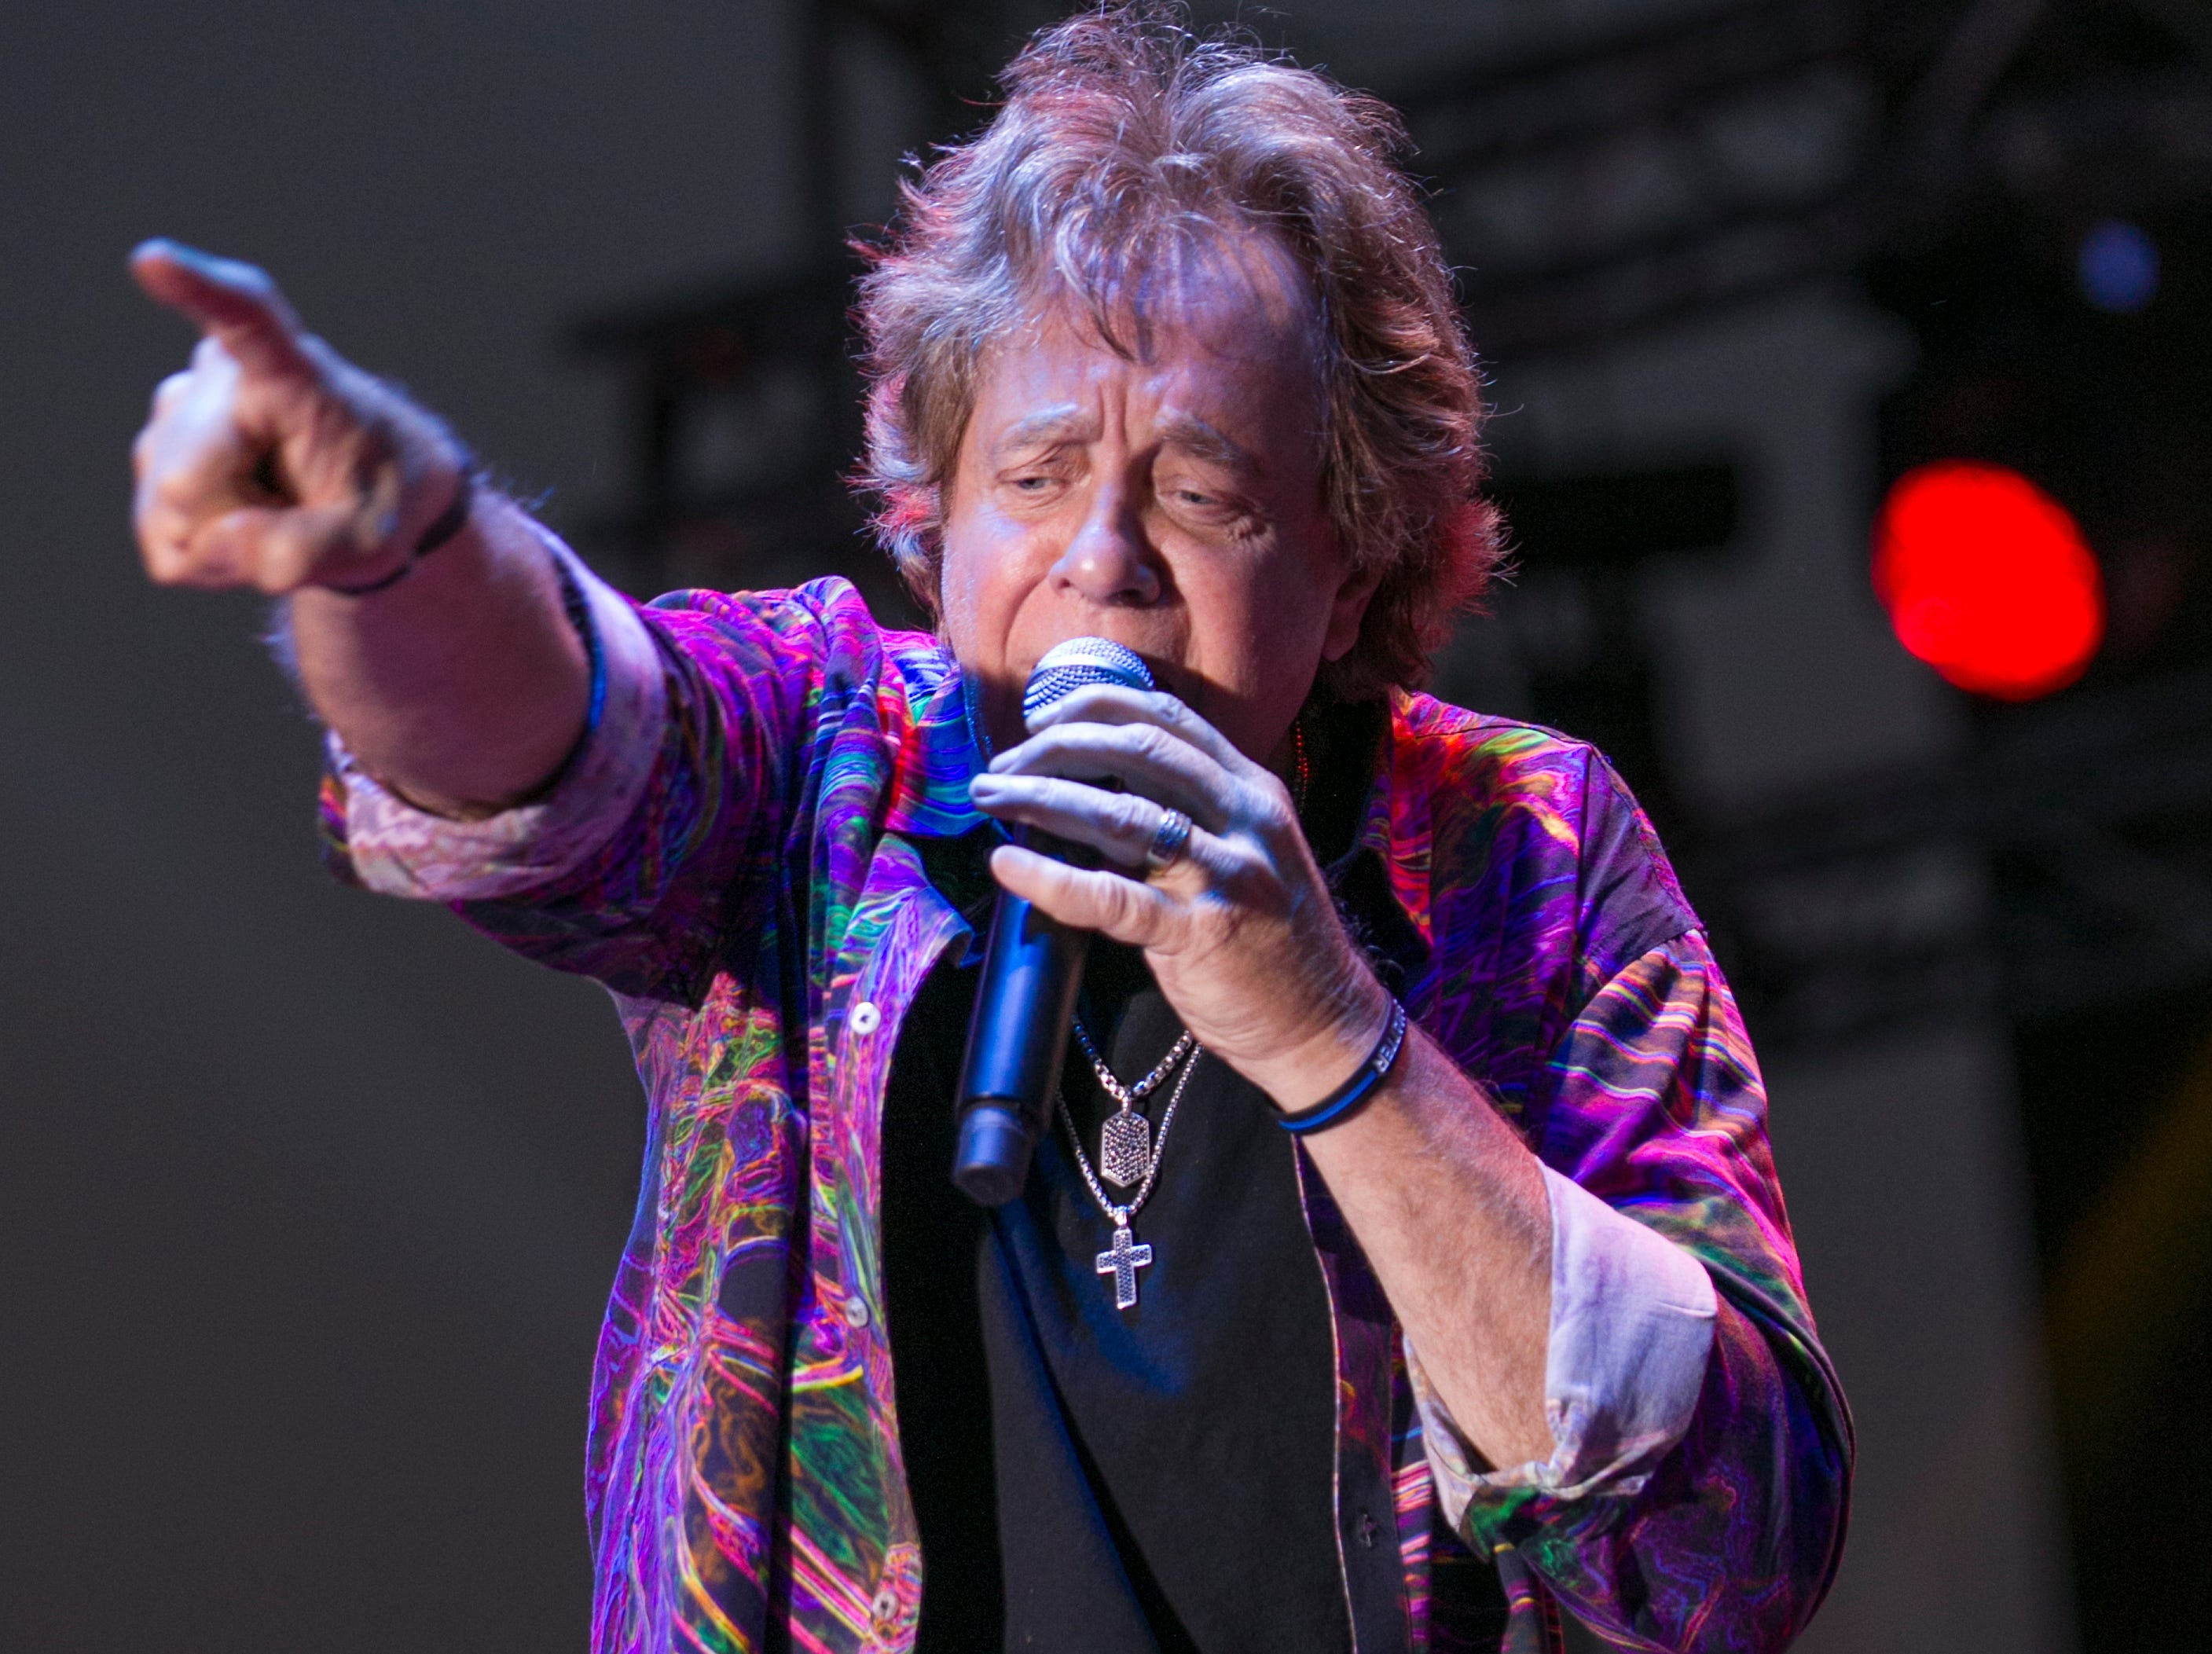 A photograph taken during the Hot August Nights Eddie Money concert at the Grand Sierra Resort in Reno on Thursday, August 9, 2018.